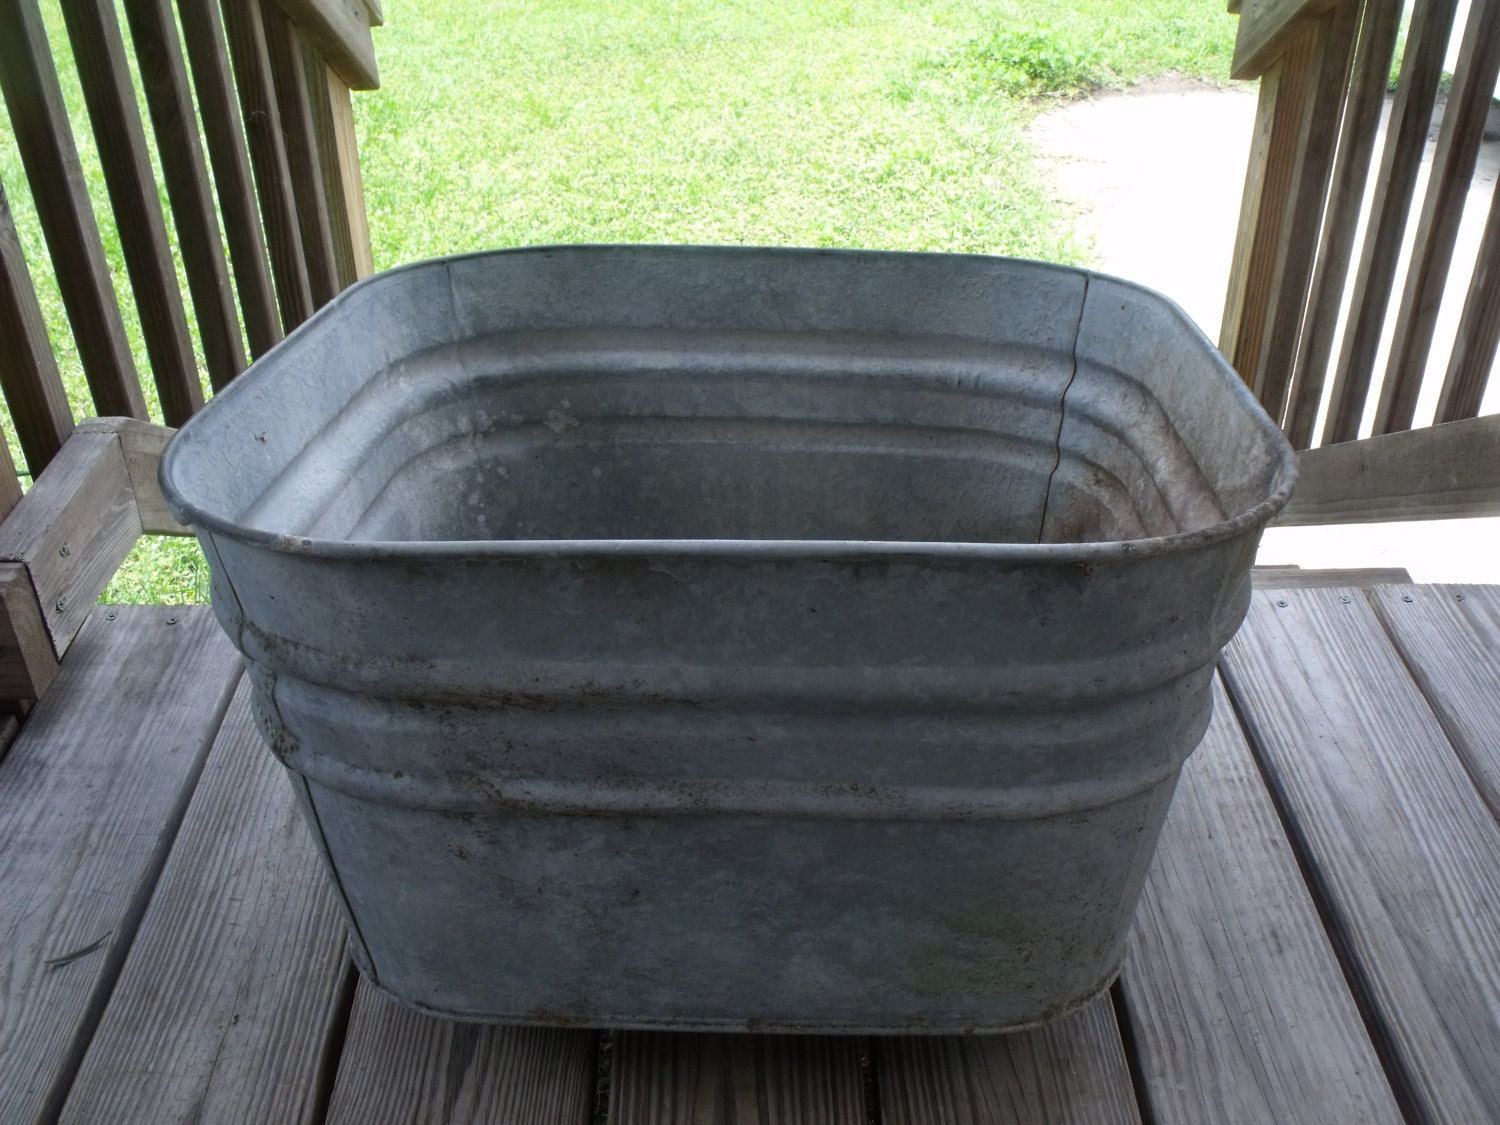 Vintage Galvanized Steel Rub A Dub Tub Wash Basin Sink